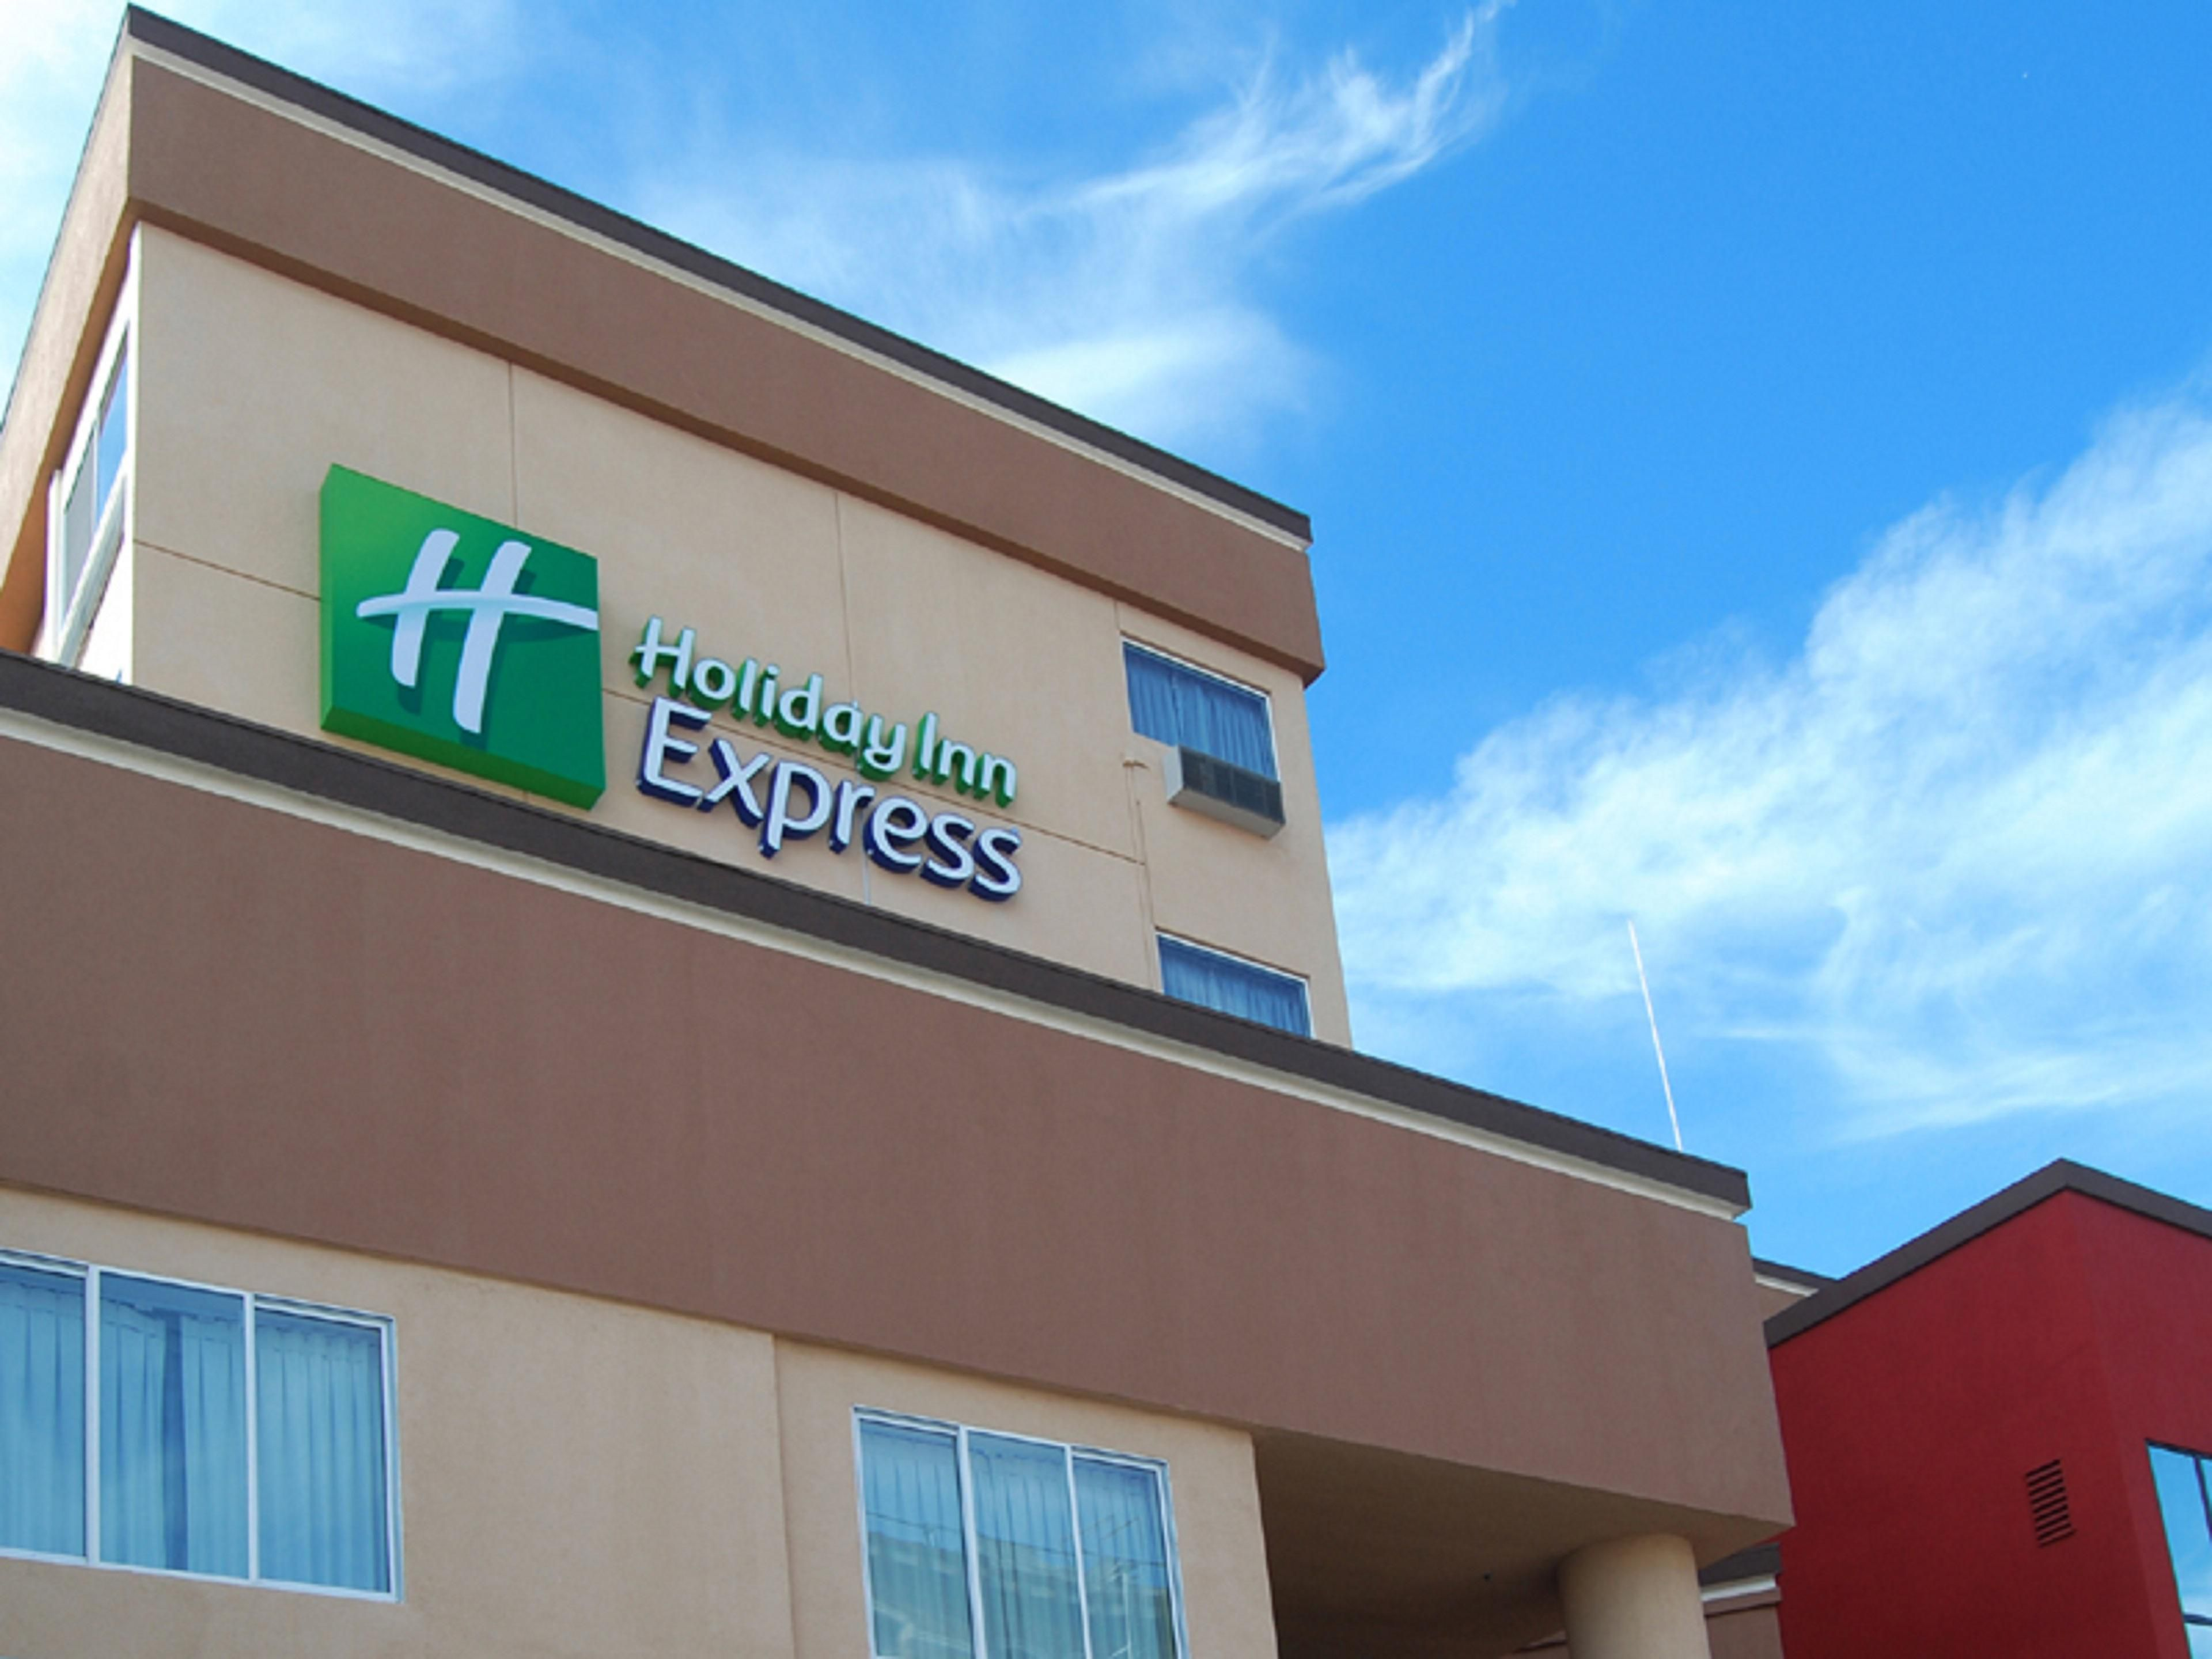 universal hotels wi express holidayinnexpress comforter by orlando holiday en us hoteldetail comfort suites hotel mcomb and ihg nearest inn rhinelander